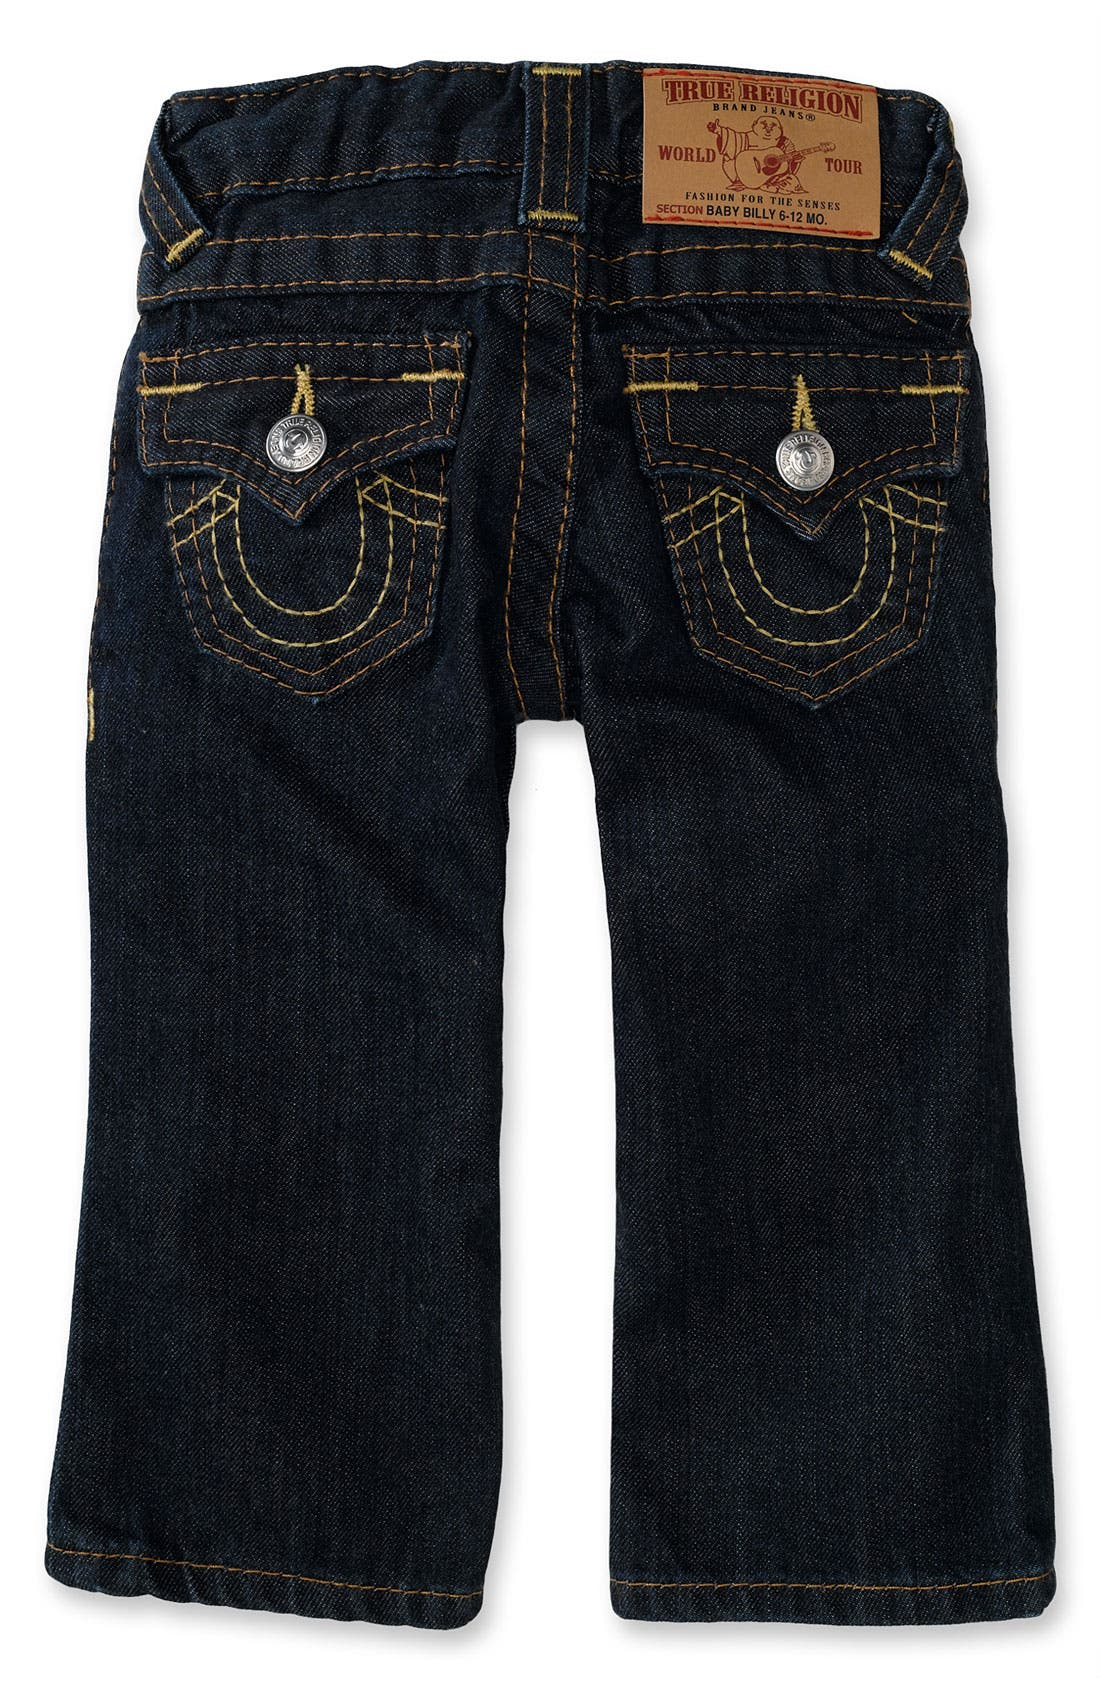 Main Image - True Religion Brand Jeans 'Baby Billy' Jeans (Infant)